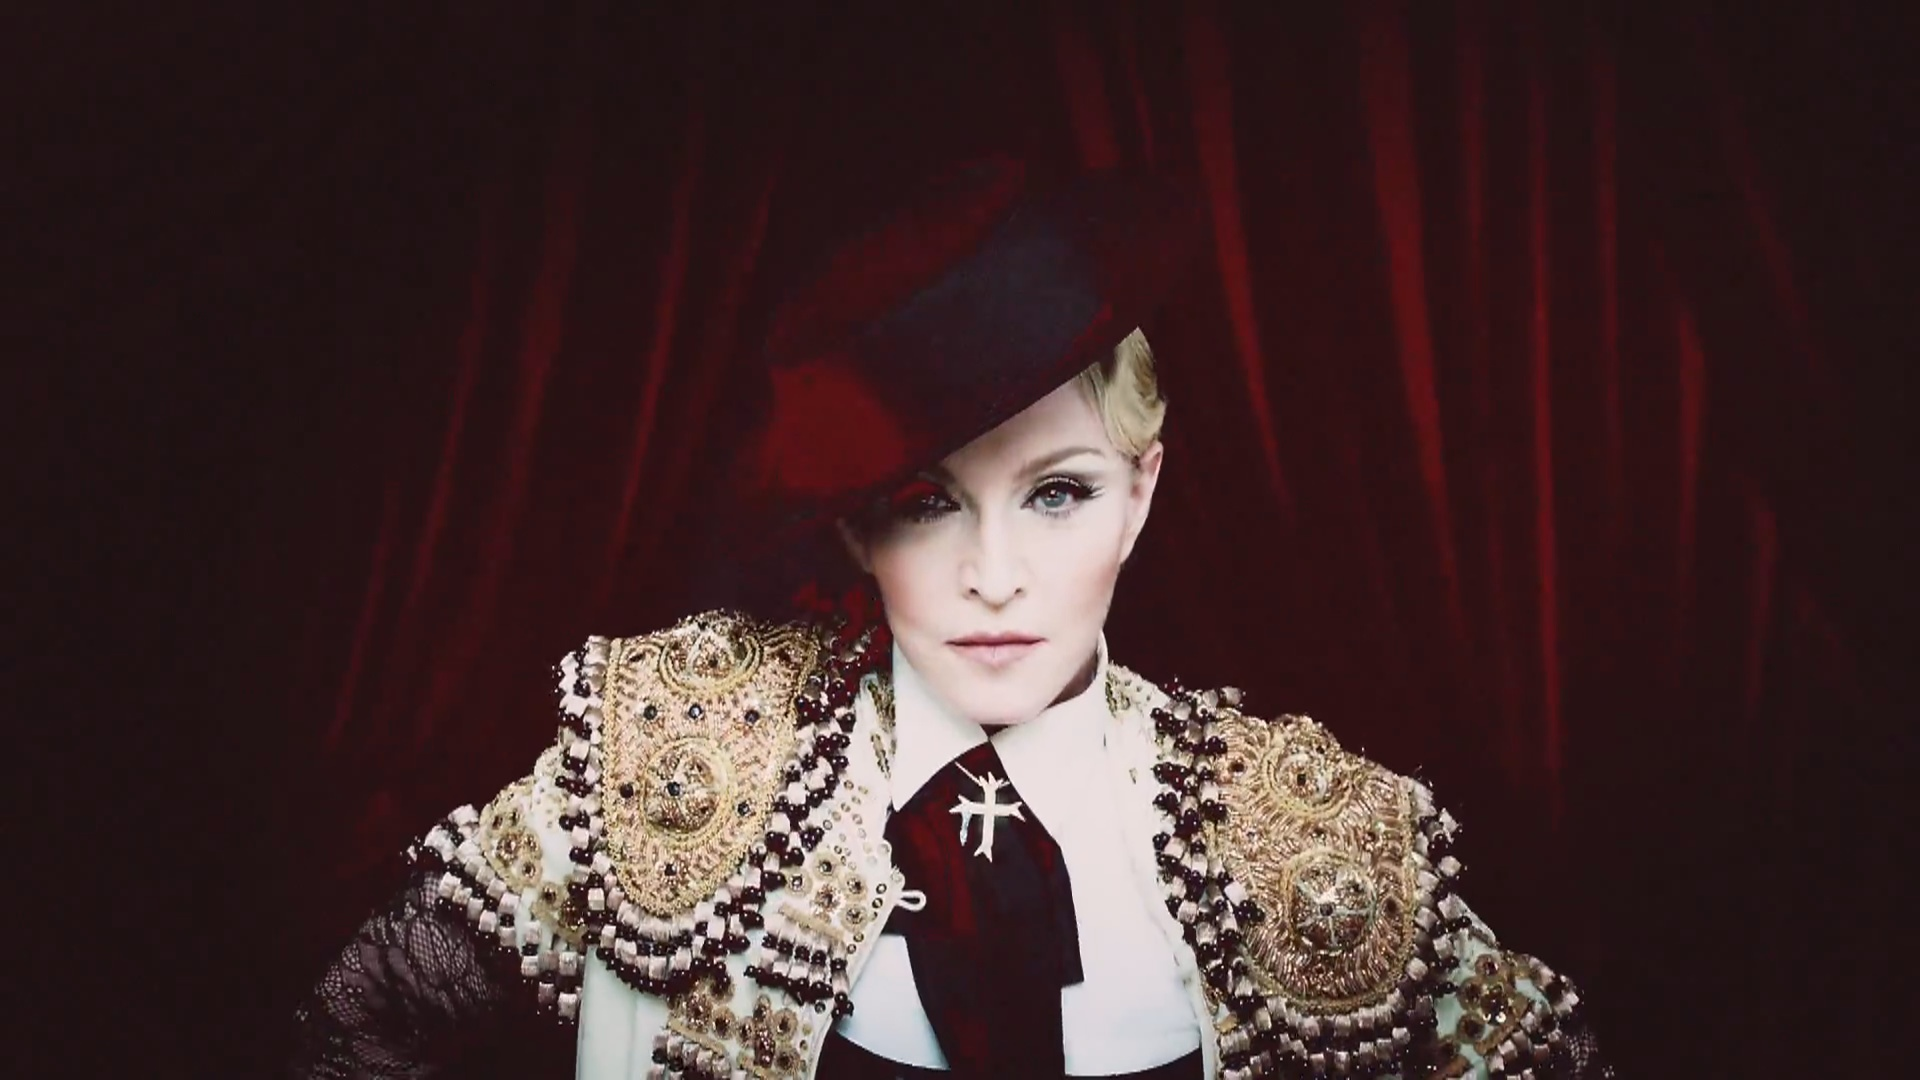 madonna living for love rebel heart video136